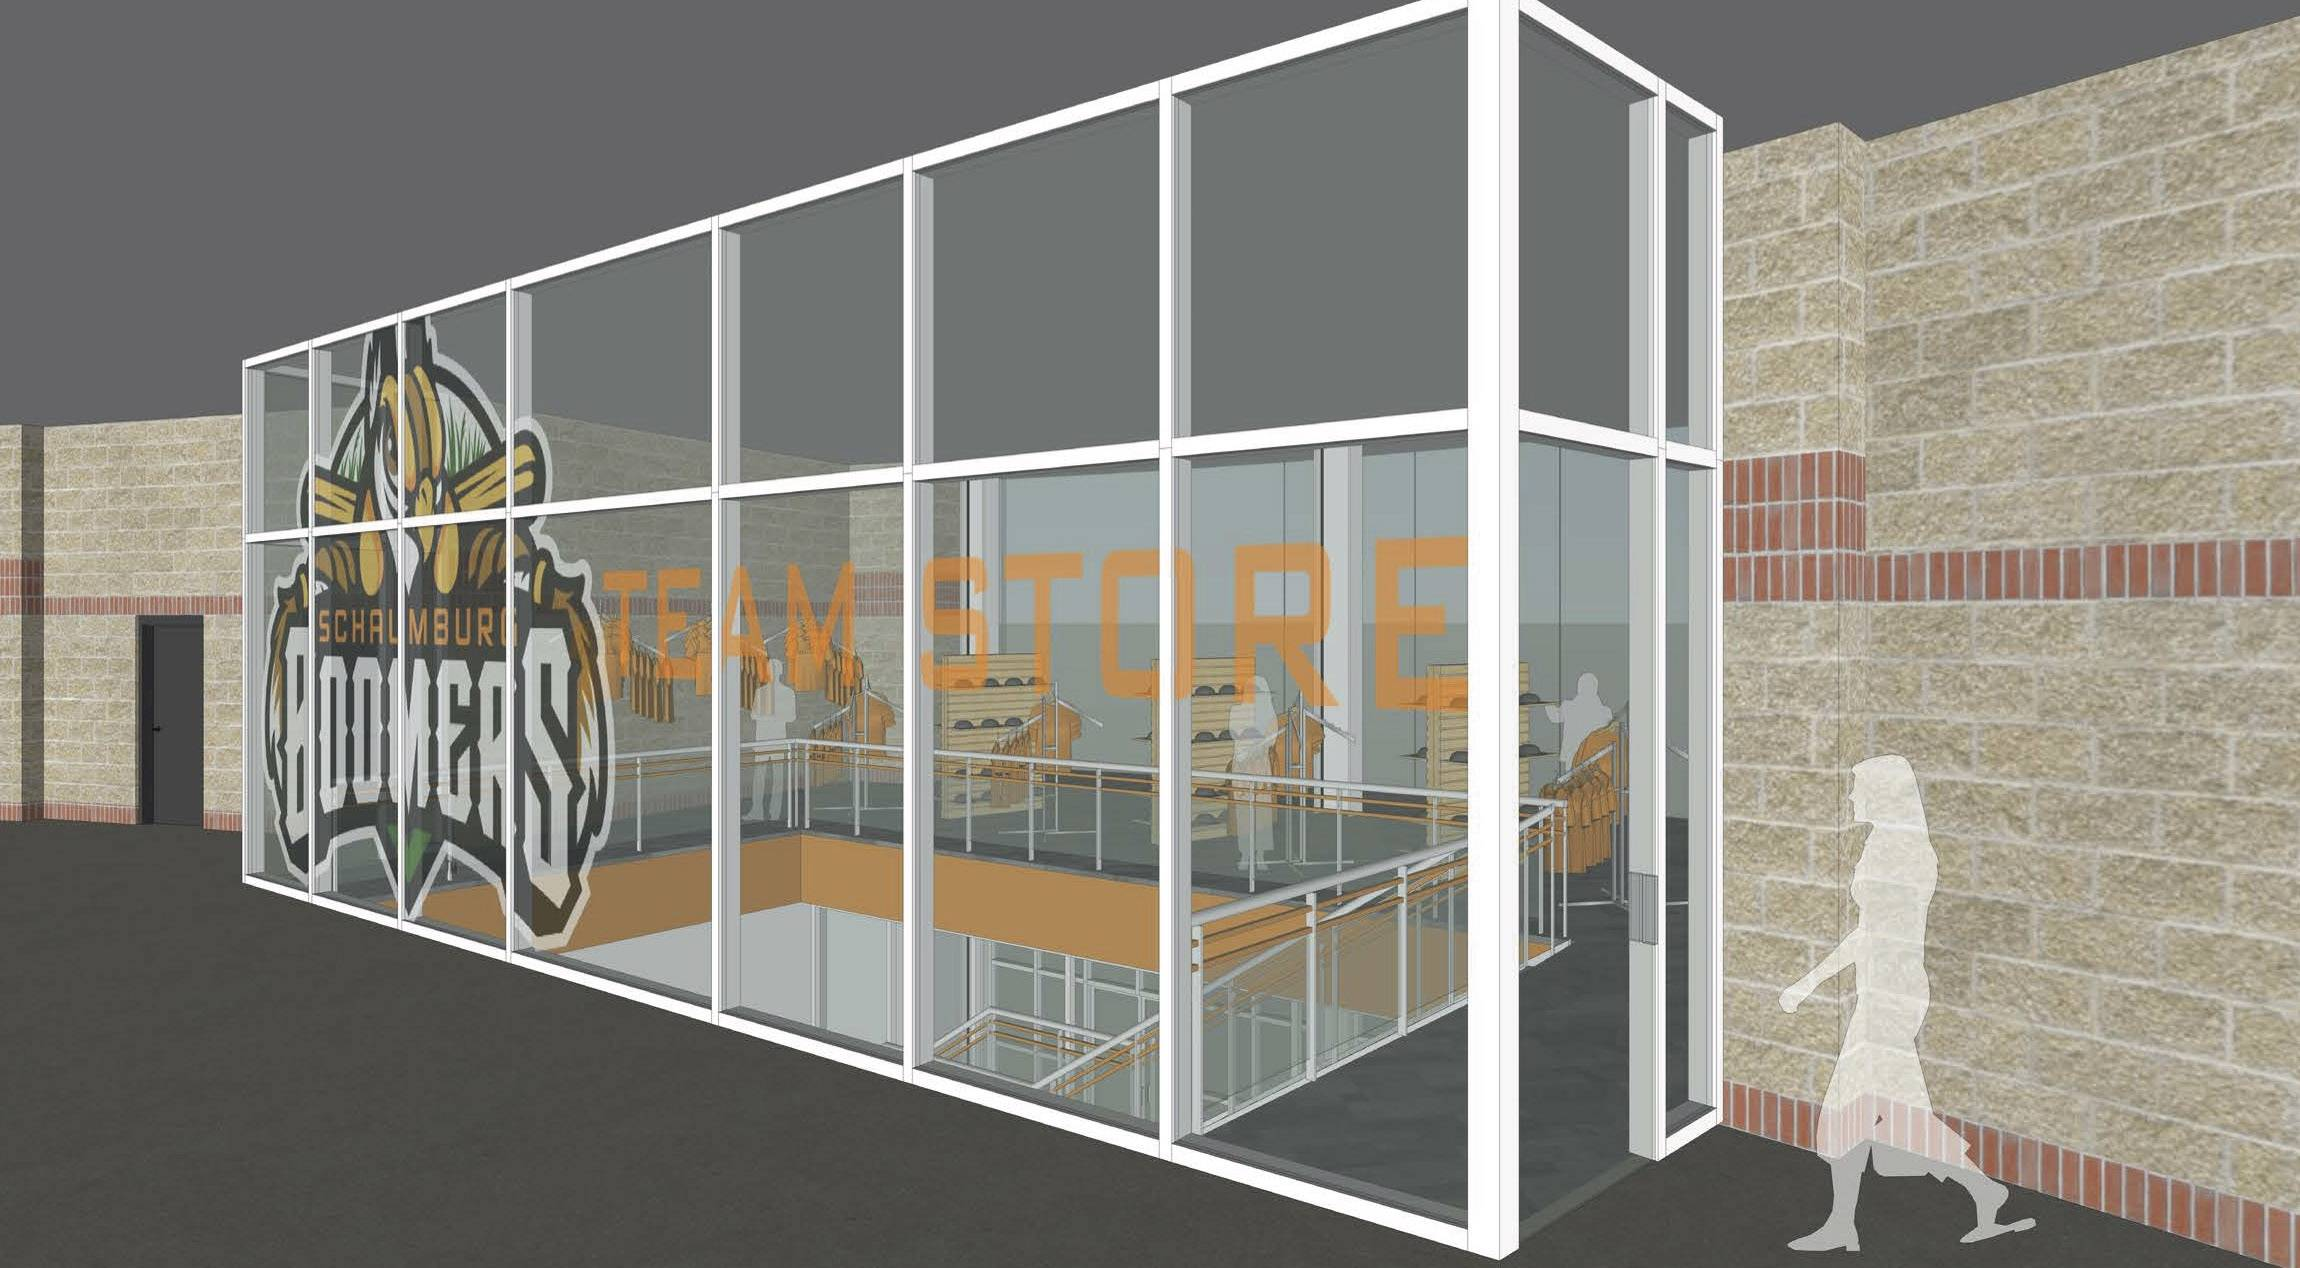 This rendering from consulting firm Jones Petrie Rafinski shows the upper level of a proposed two-story team store to make merchandise more visible and eliminate the existing wind tunnel problem at Schaumburg Boomers Stadium.